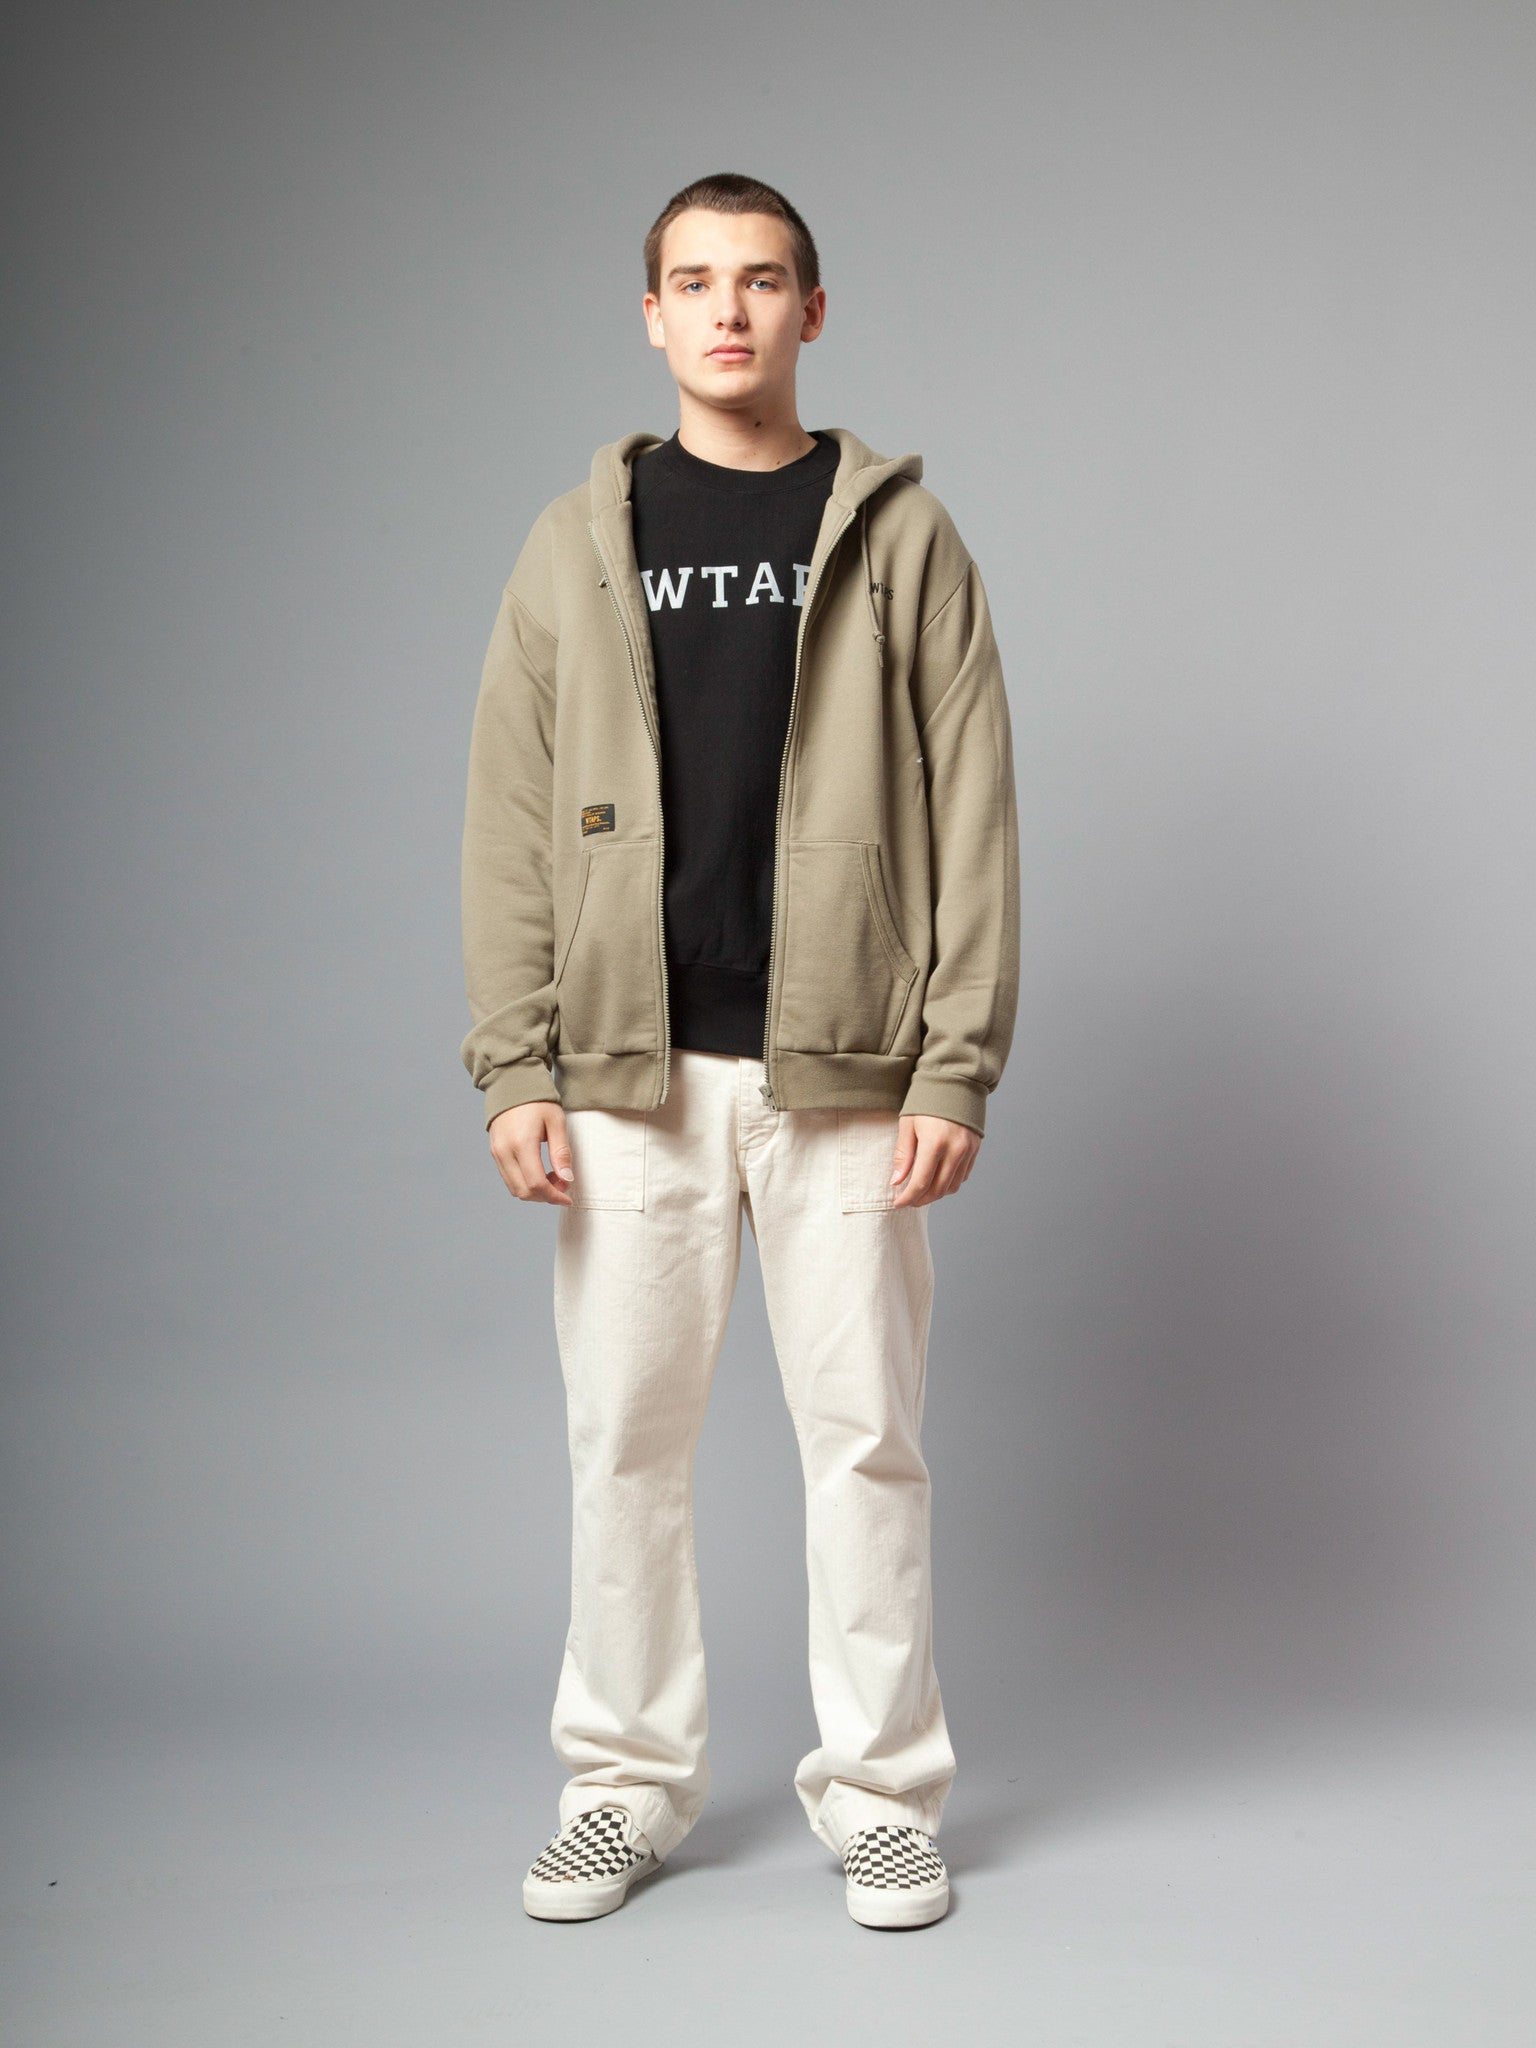 Grey Hellweek Zip Up WTVUA Sweatshirt 4